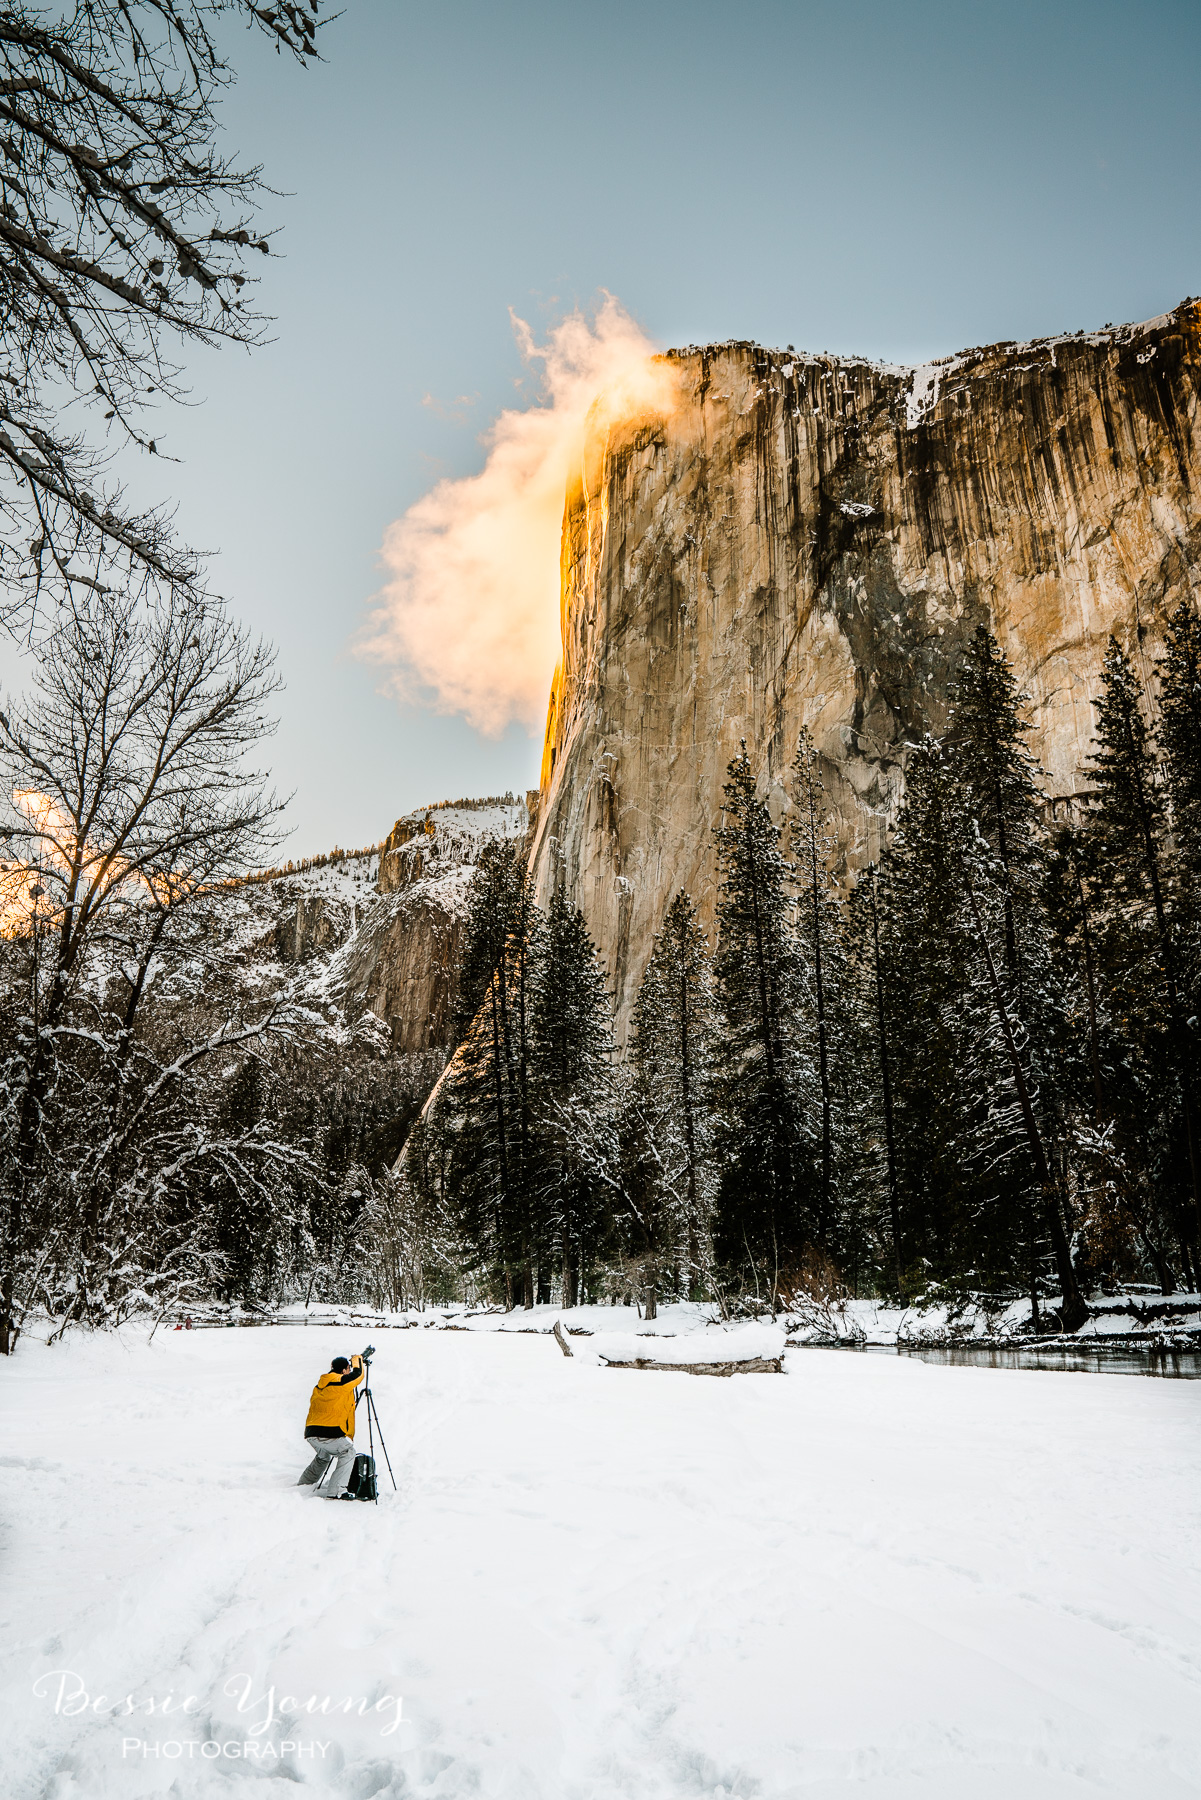 Yosemite National Park Photography by Bessie Young Photography